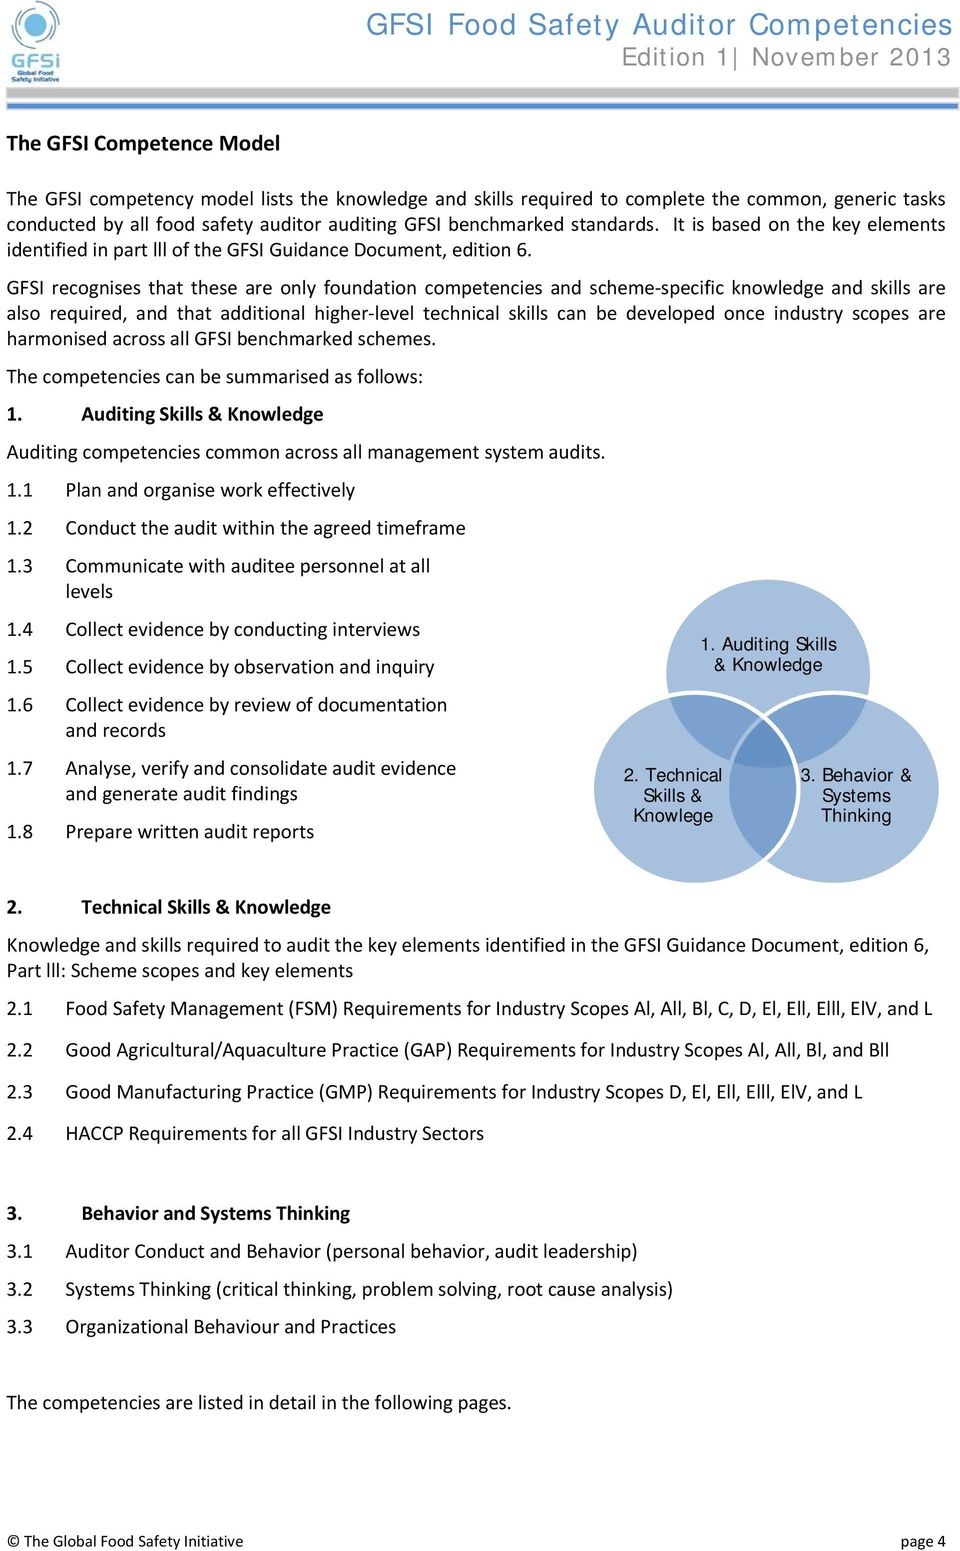 Global Food Safety Initiative  Food Safety Auditor